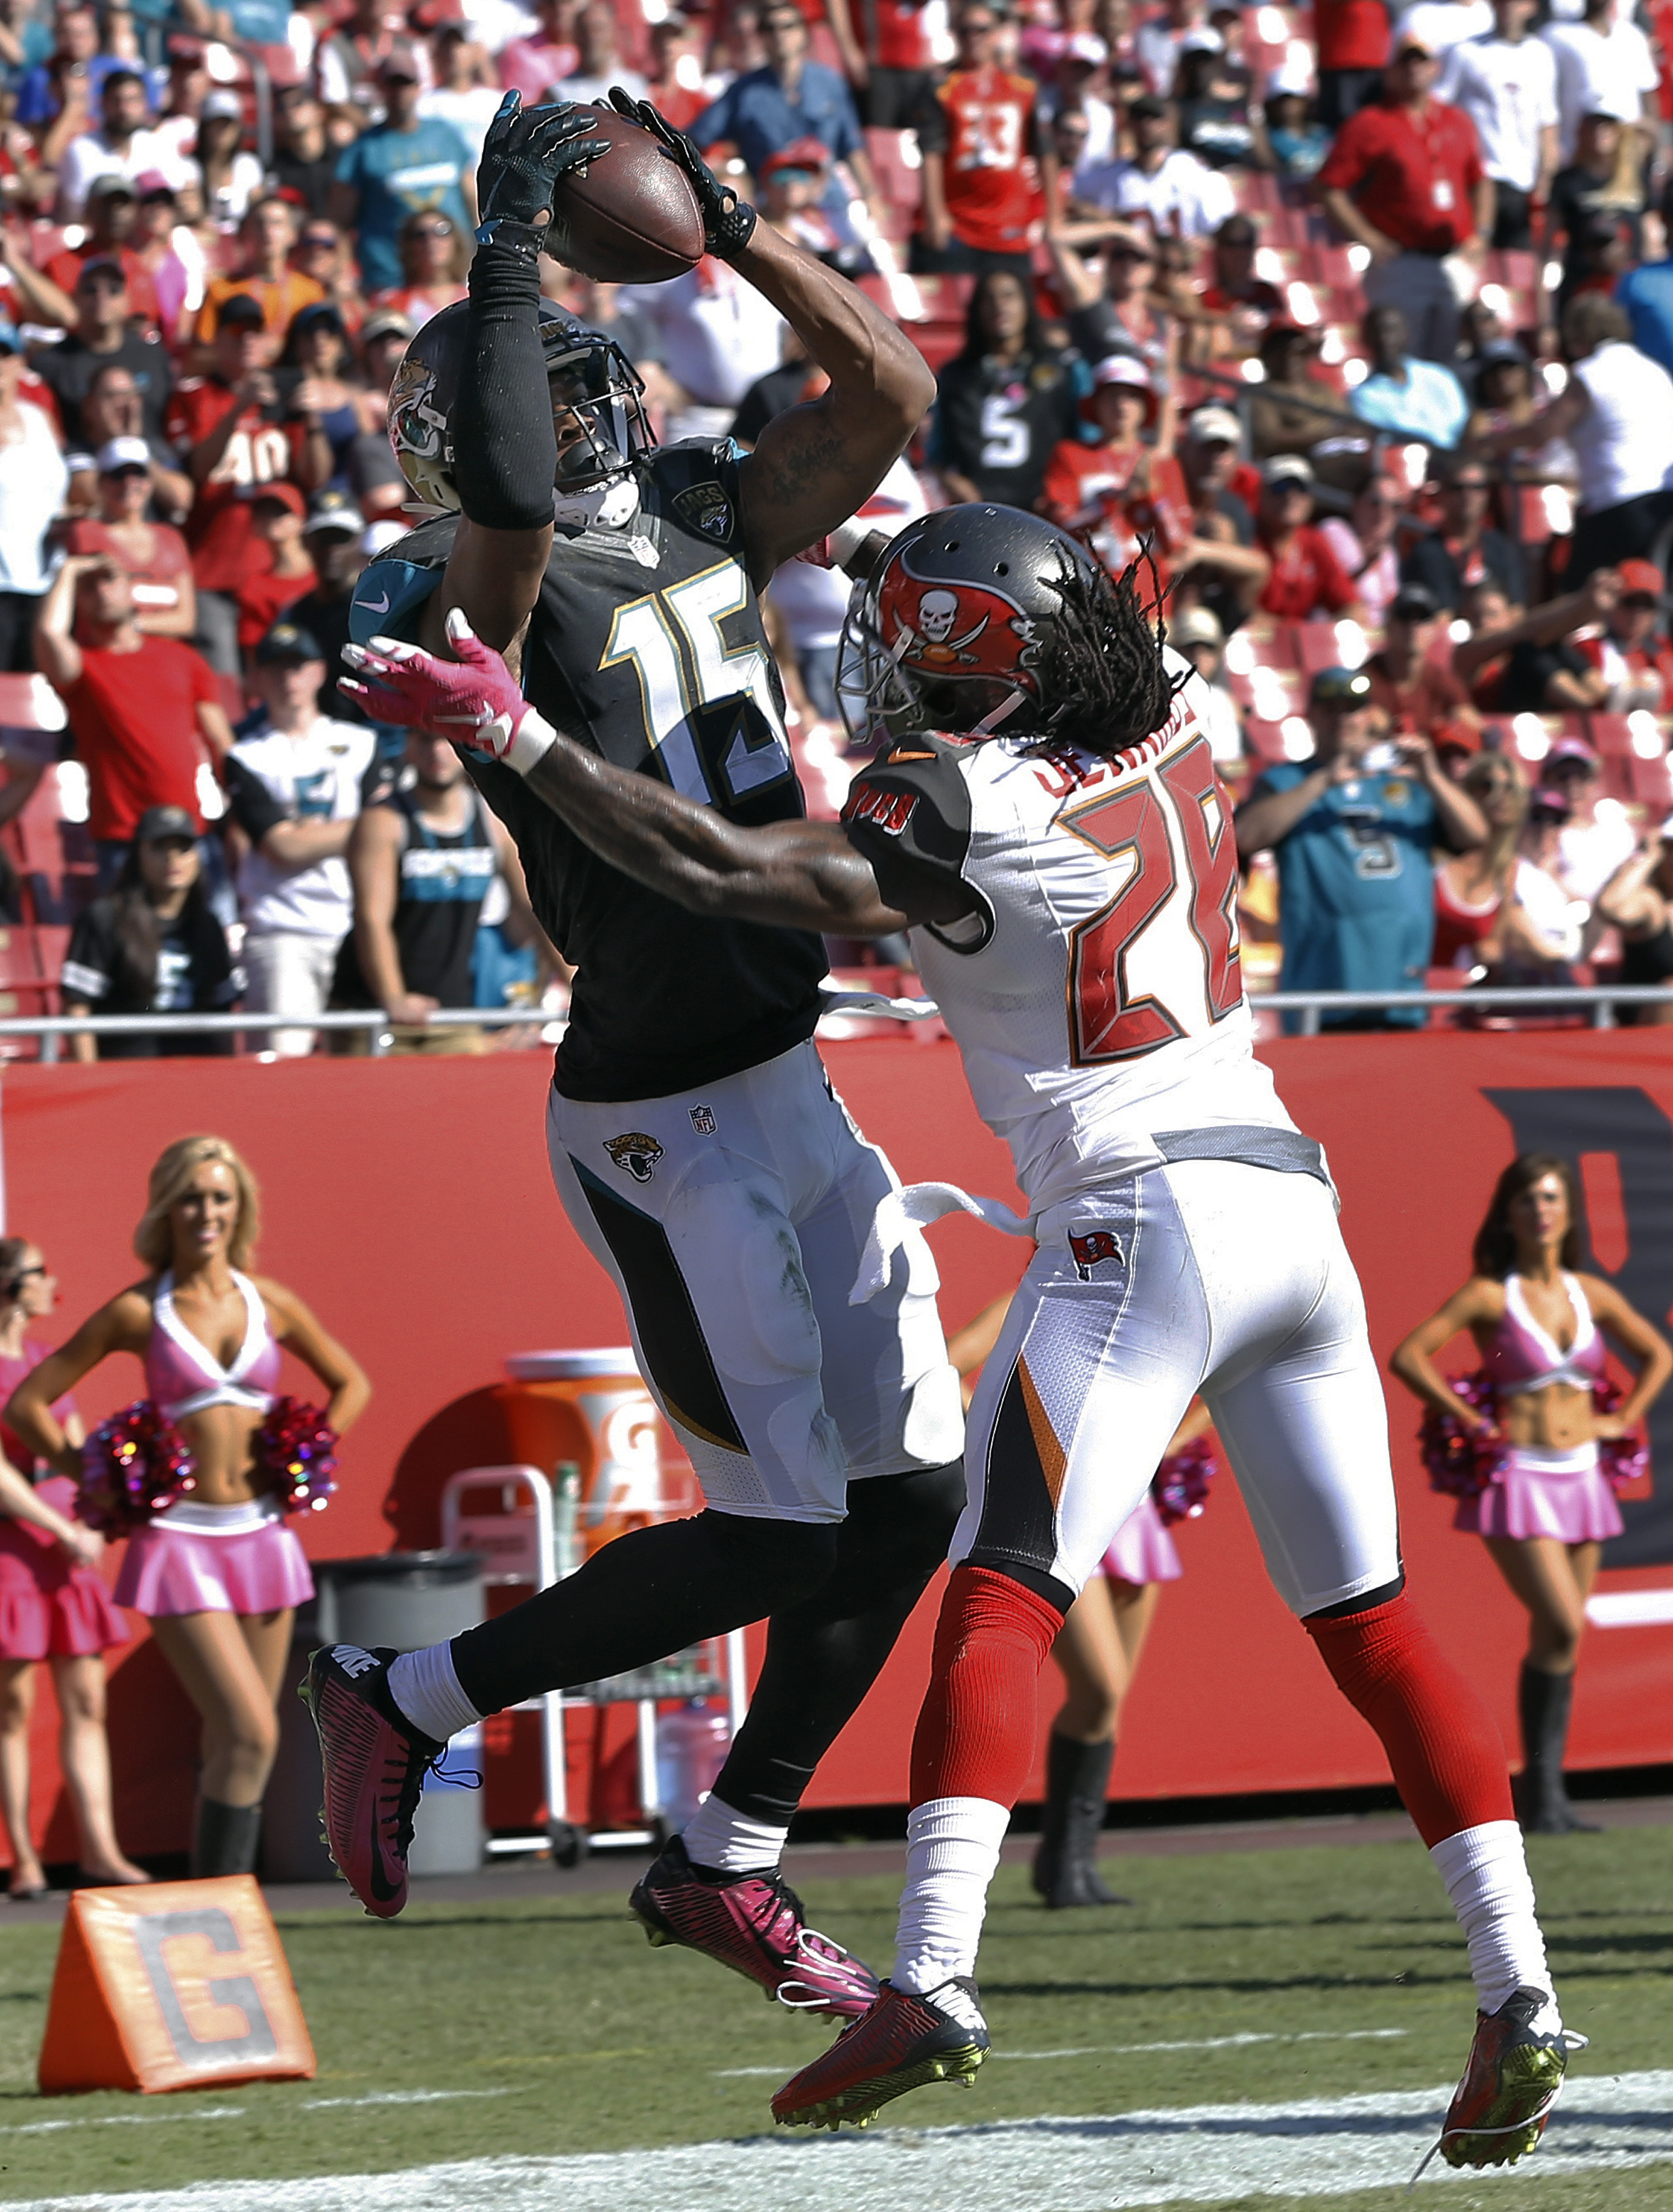 Jacksonville Jaguars wide receiver Allen Robinson (15) beats Tampa Bay Buccaneers cornerback Tim Jennings (28) on a 5-yard touchdown reception during the fourth quarter of an NFL football game Sunday, Oct. 11, 2015, in Tampa, Fla. (AP Photo/Brian Blanco)